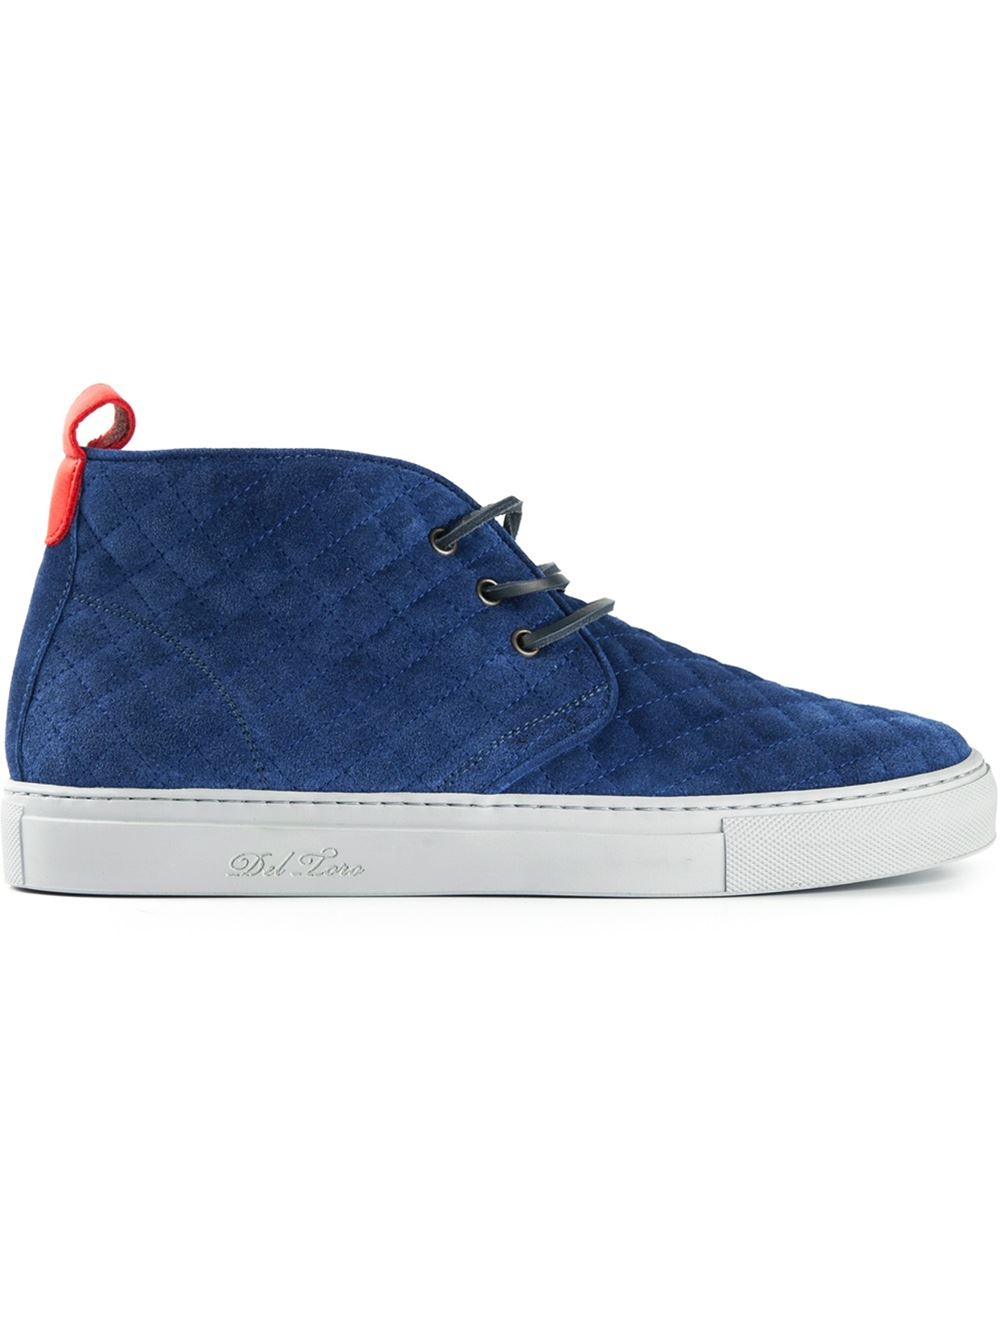 Del toro Quilted Chukka Boots in Blue for Men   Lyst : del toro quilted chukka - Adamdwight.com